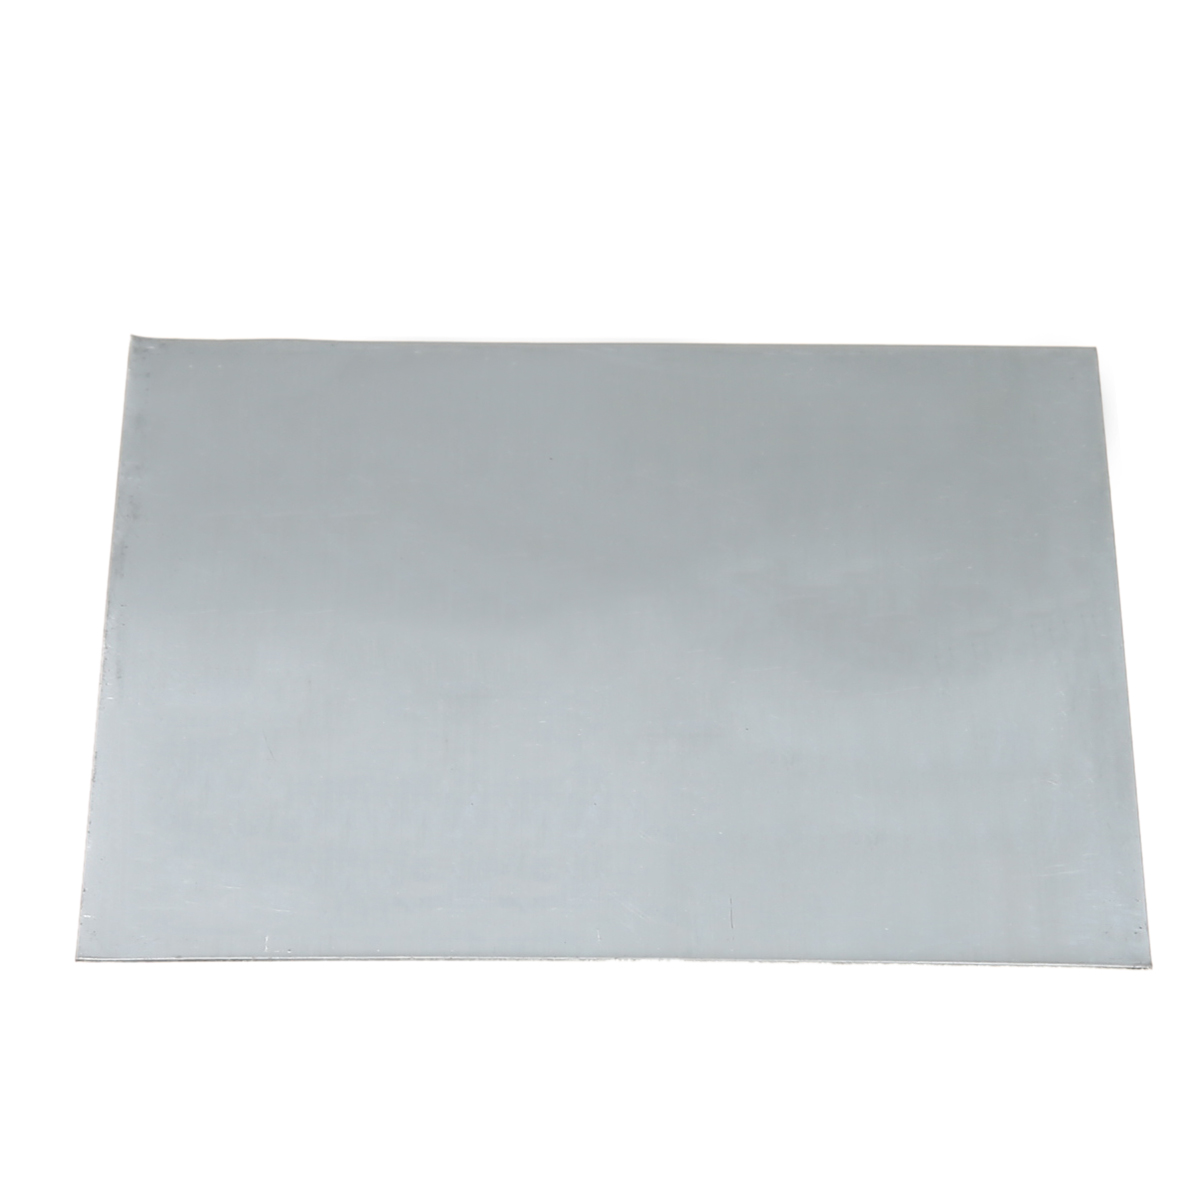 1pc High Purity Zinc Zn Sheet Plate 100mmx100mmx0.2mm Bluish-white Metal Color For Science Lab Chemical